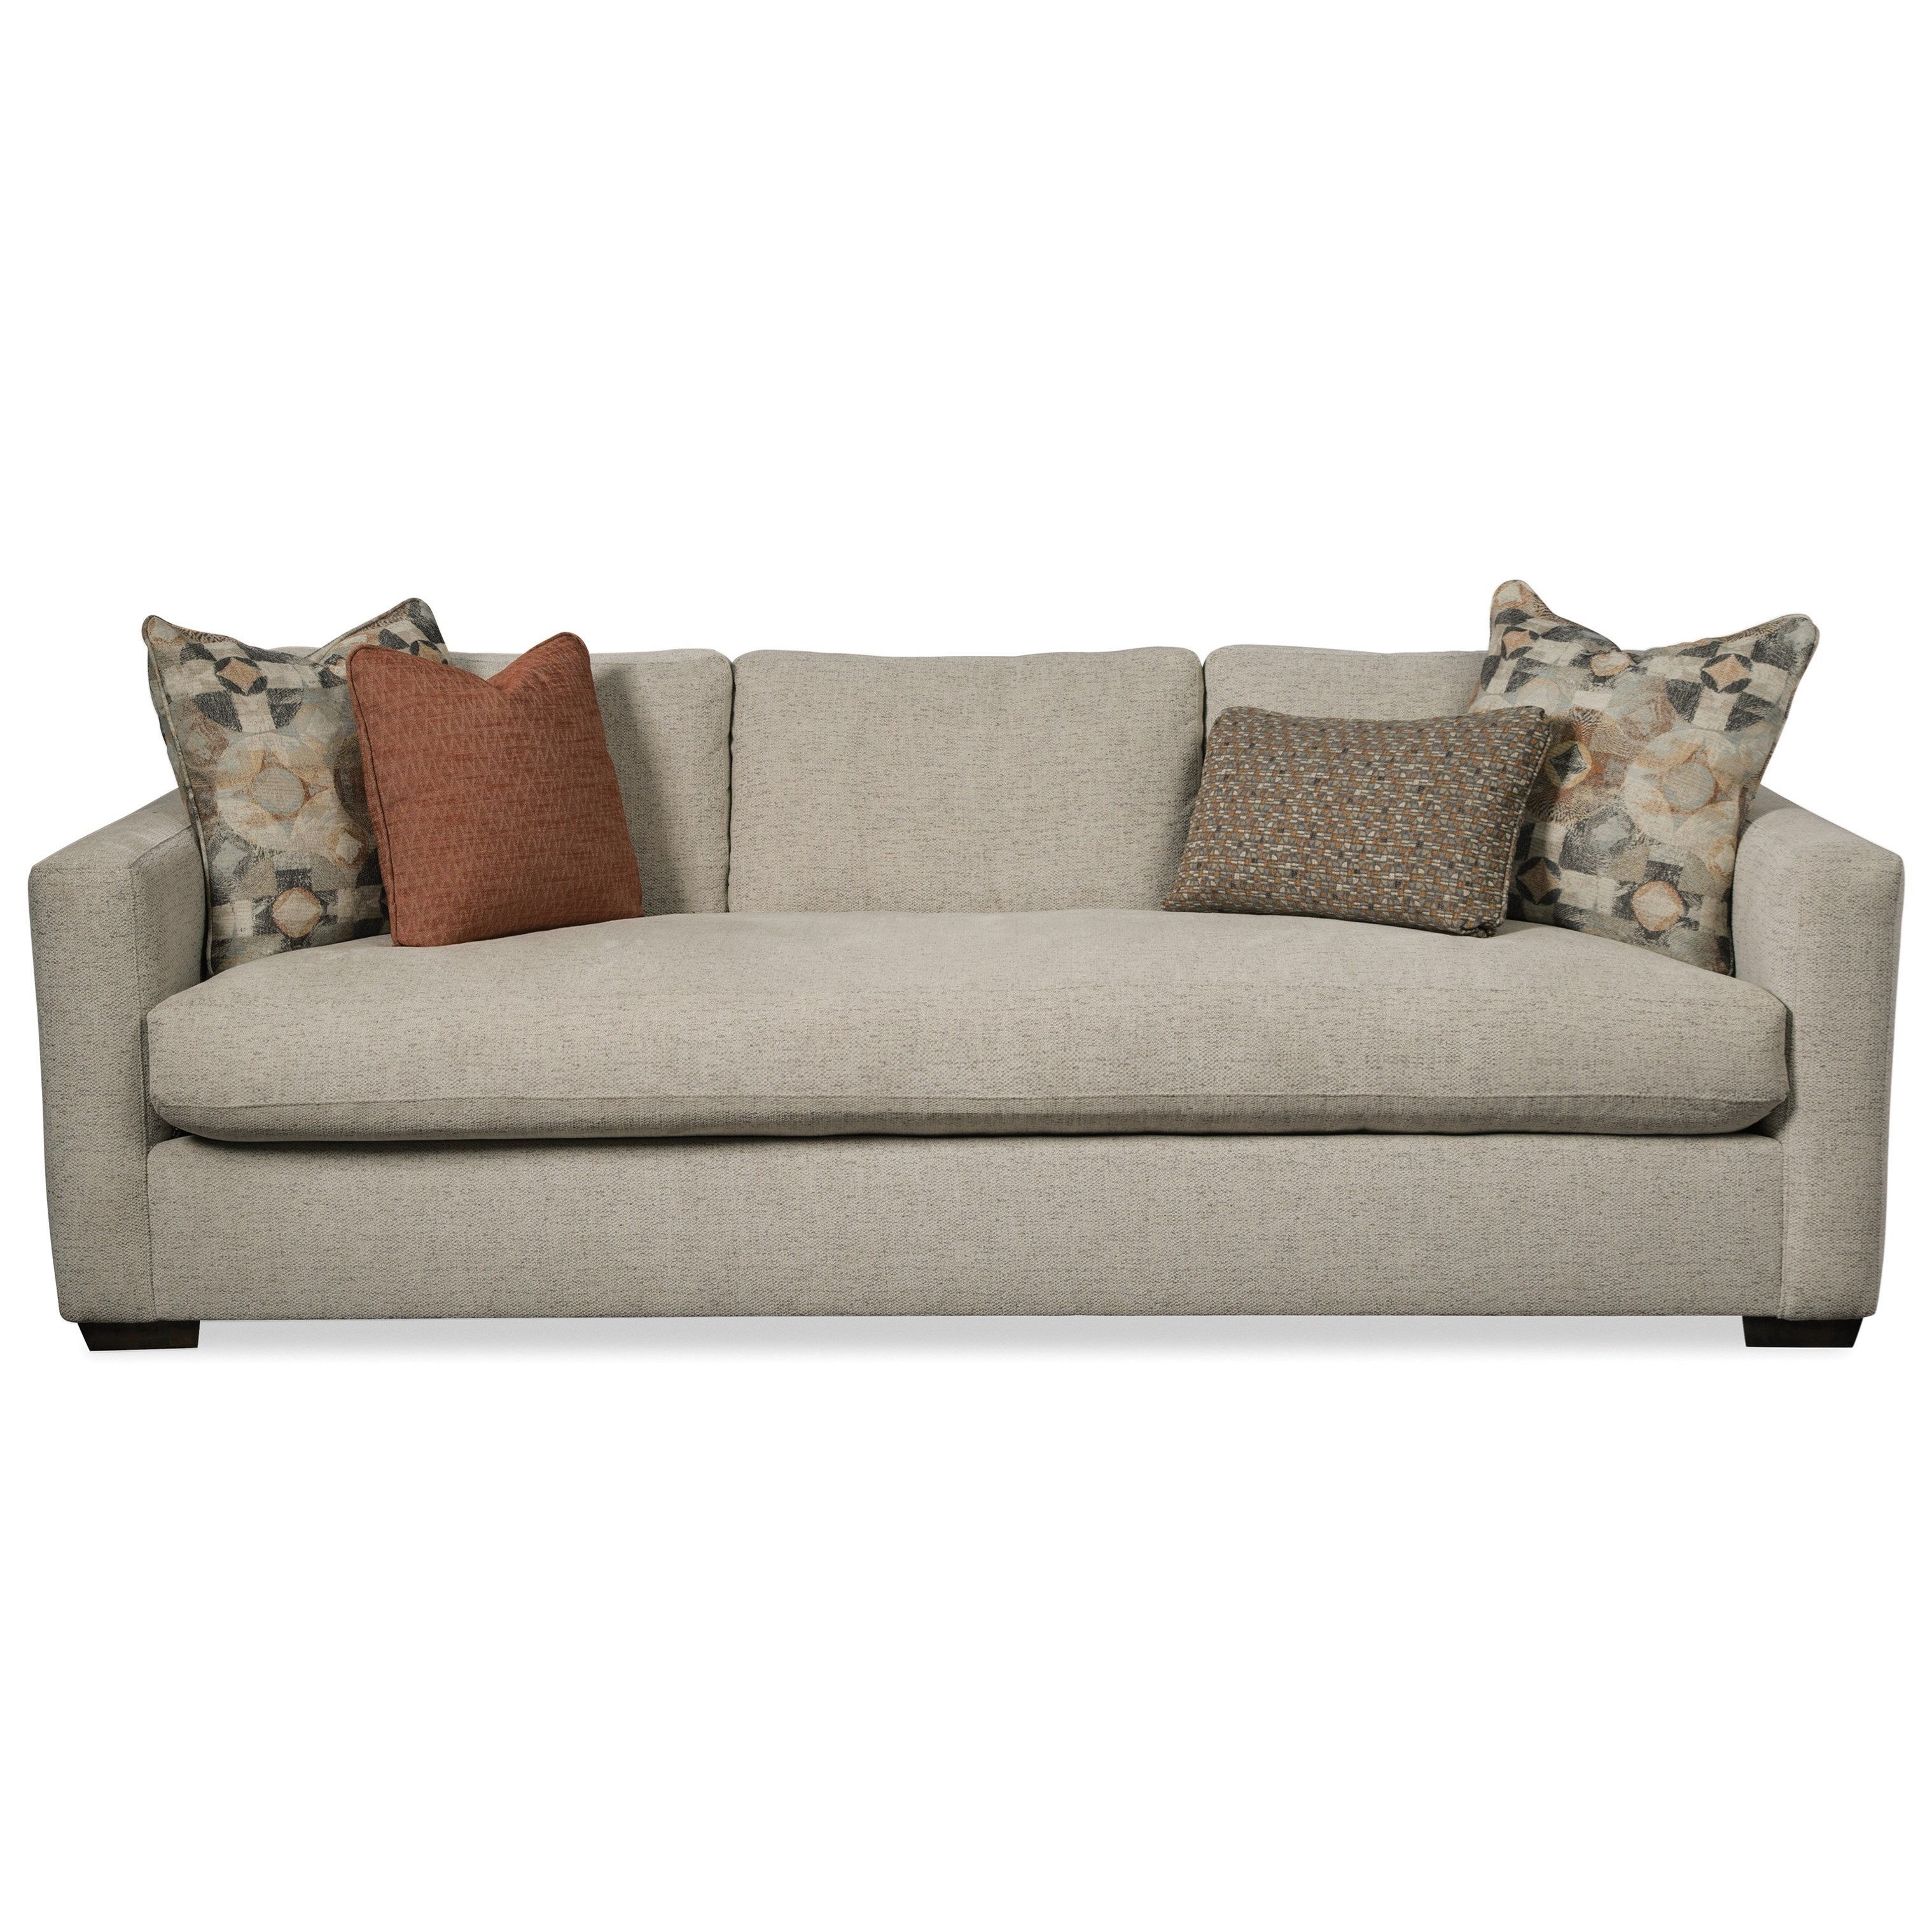 792750BD Bench Cushion Sofa by Craftmaster at Baer's Furniture